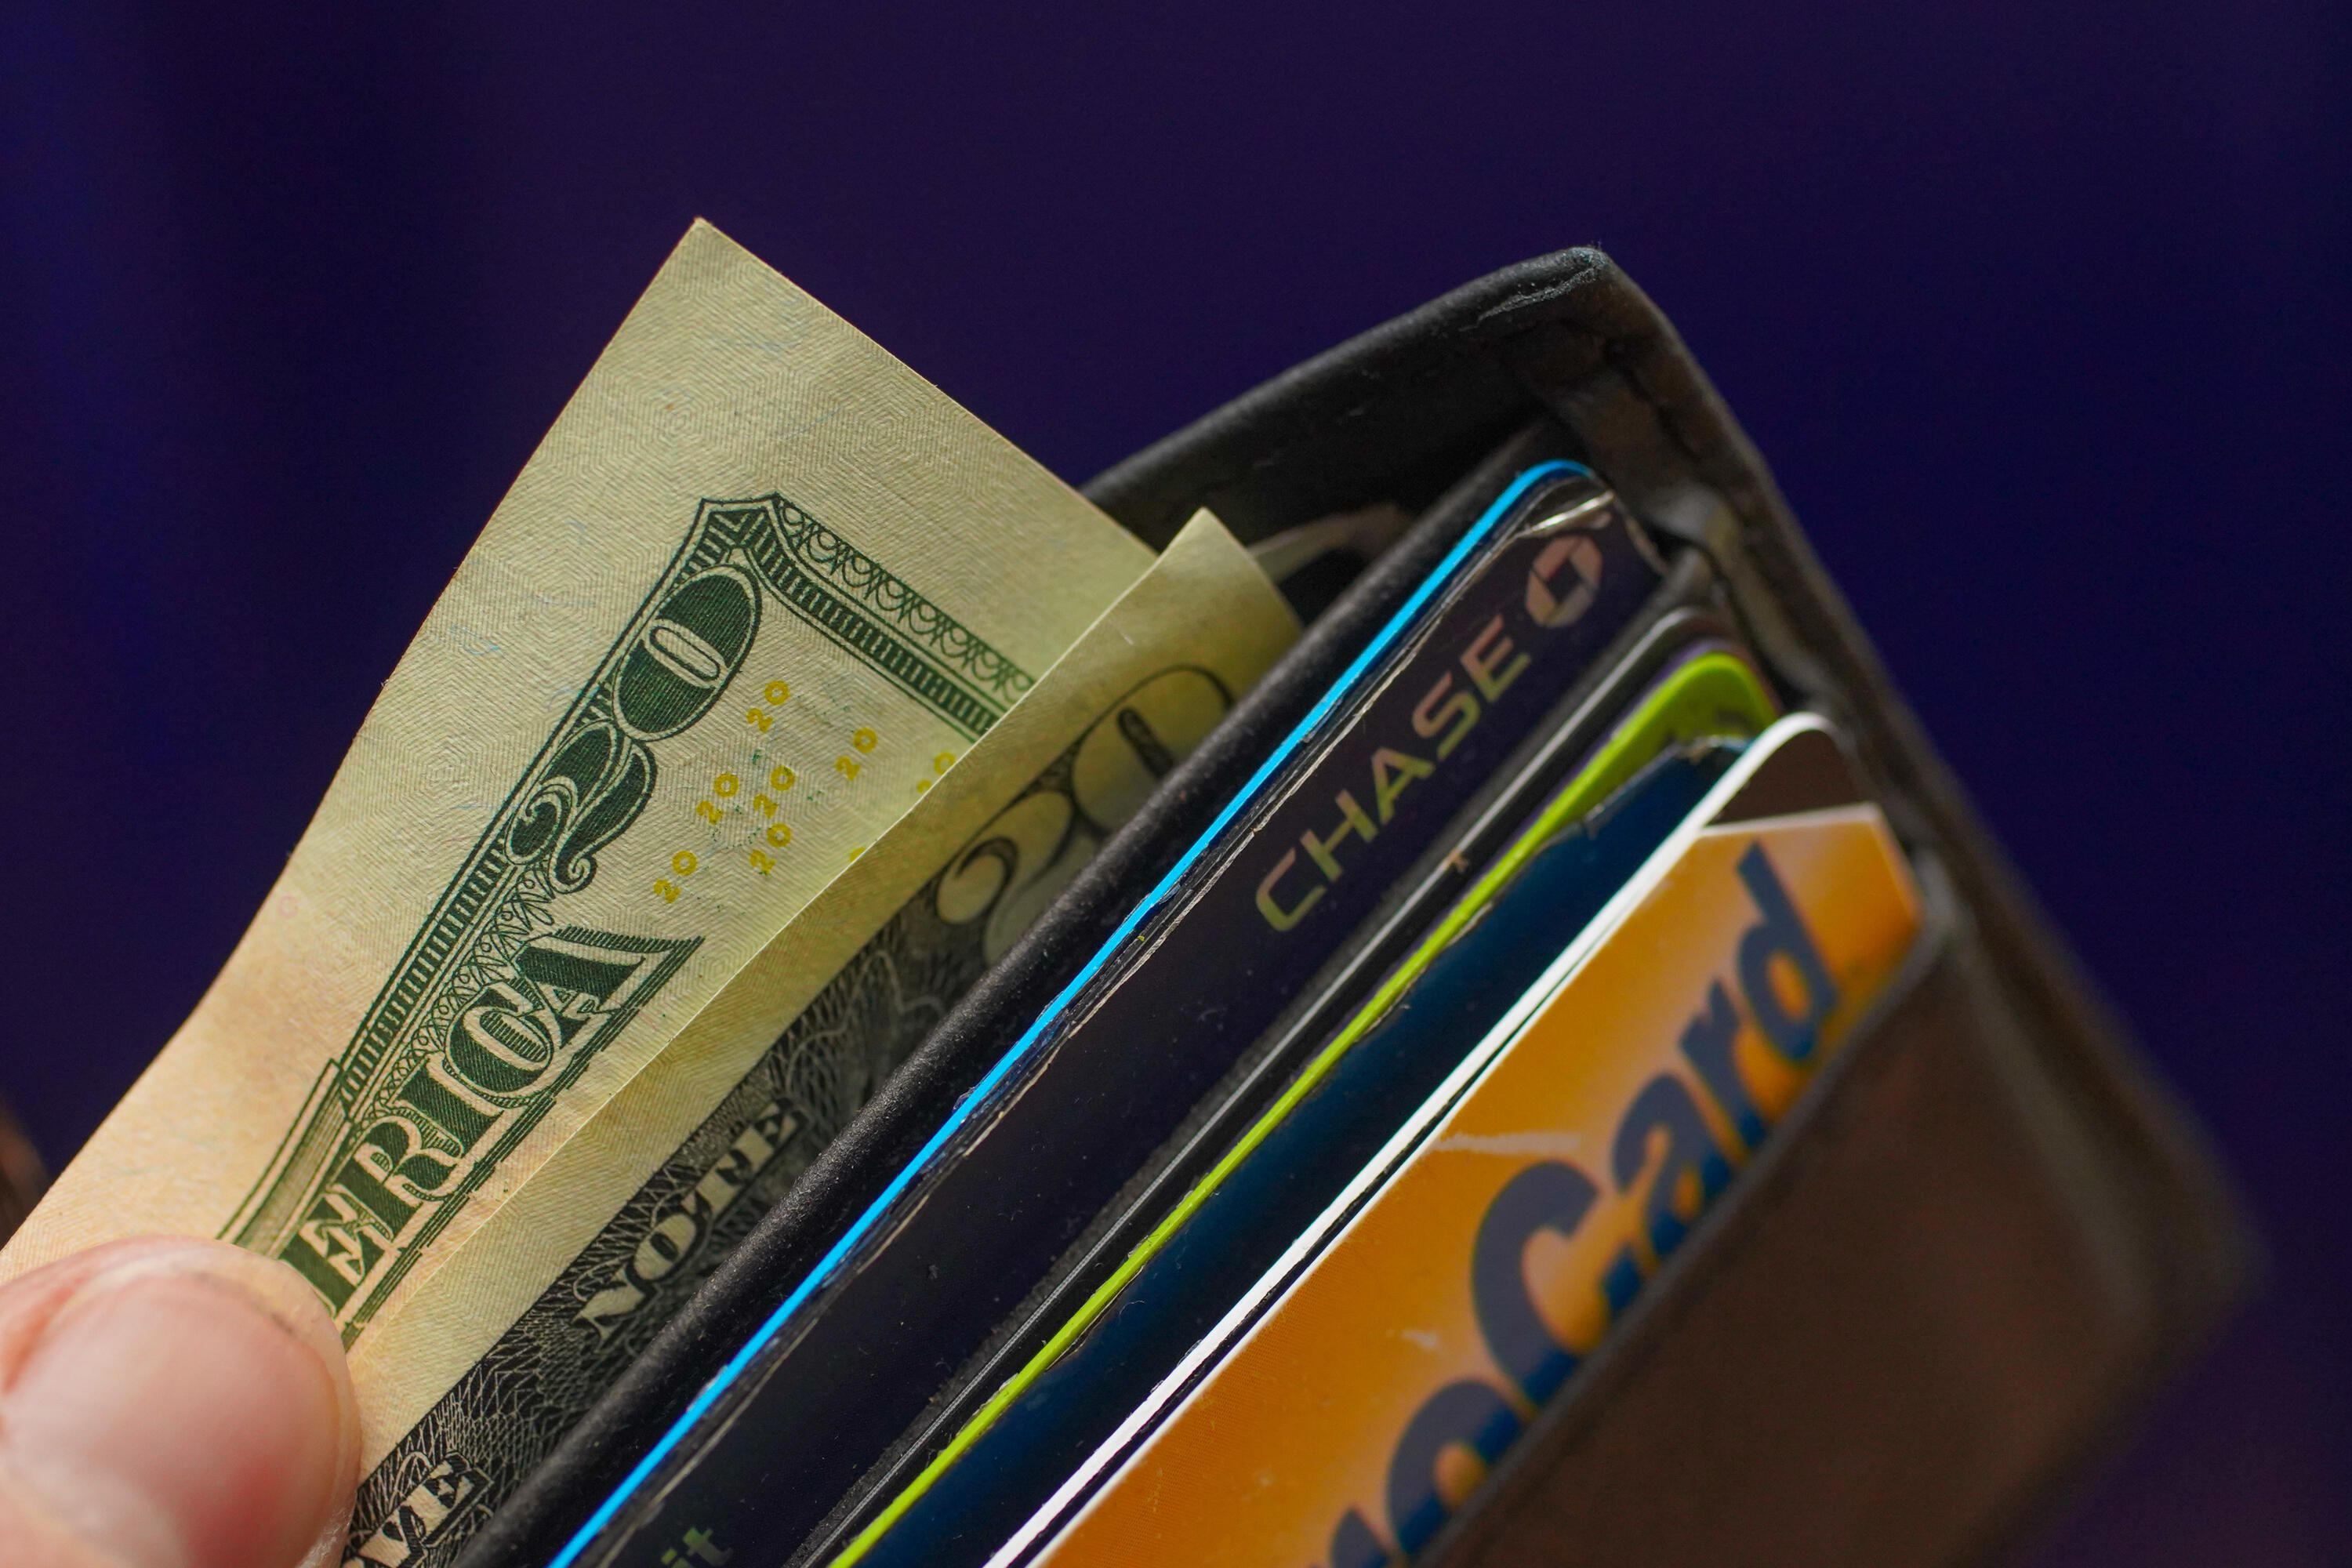 $20 bills and credit cards in a wallet